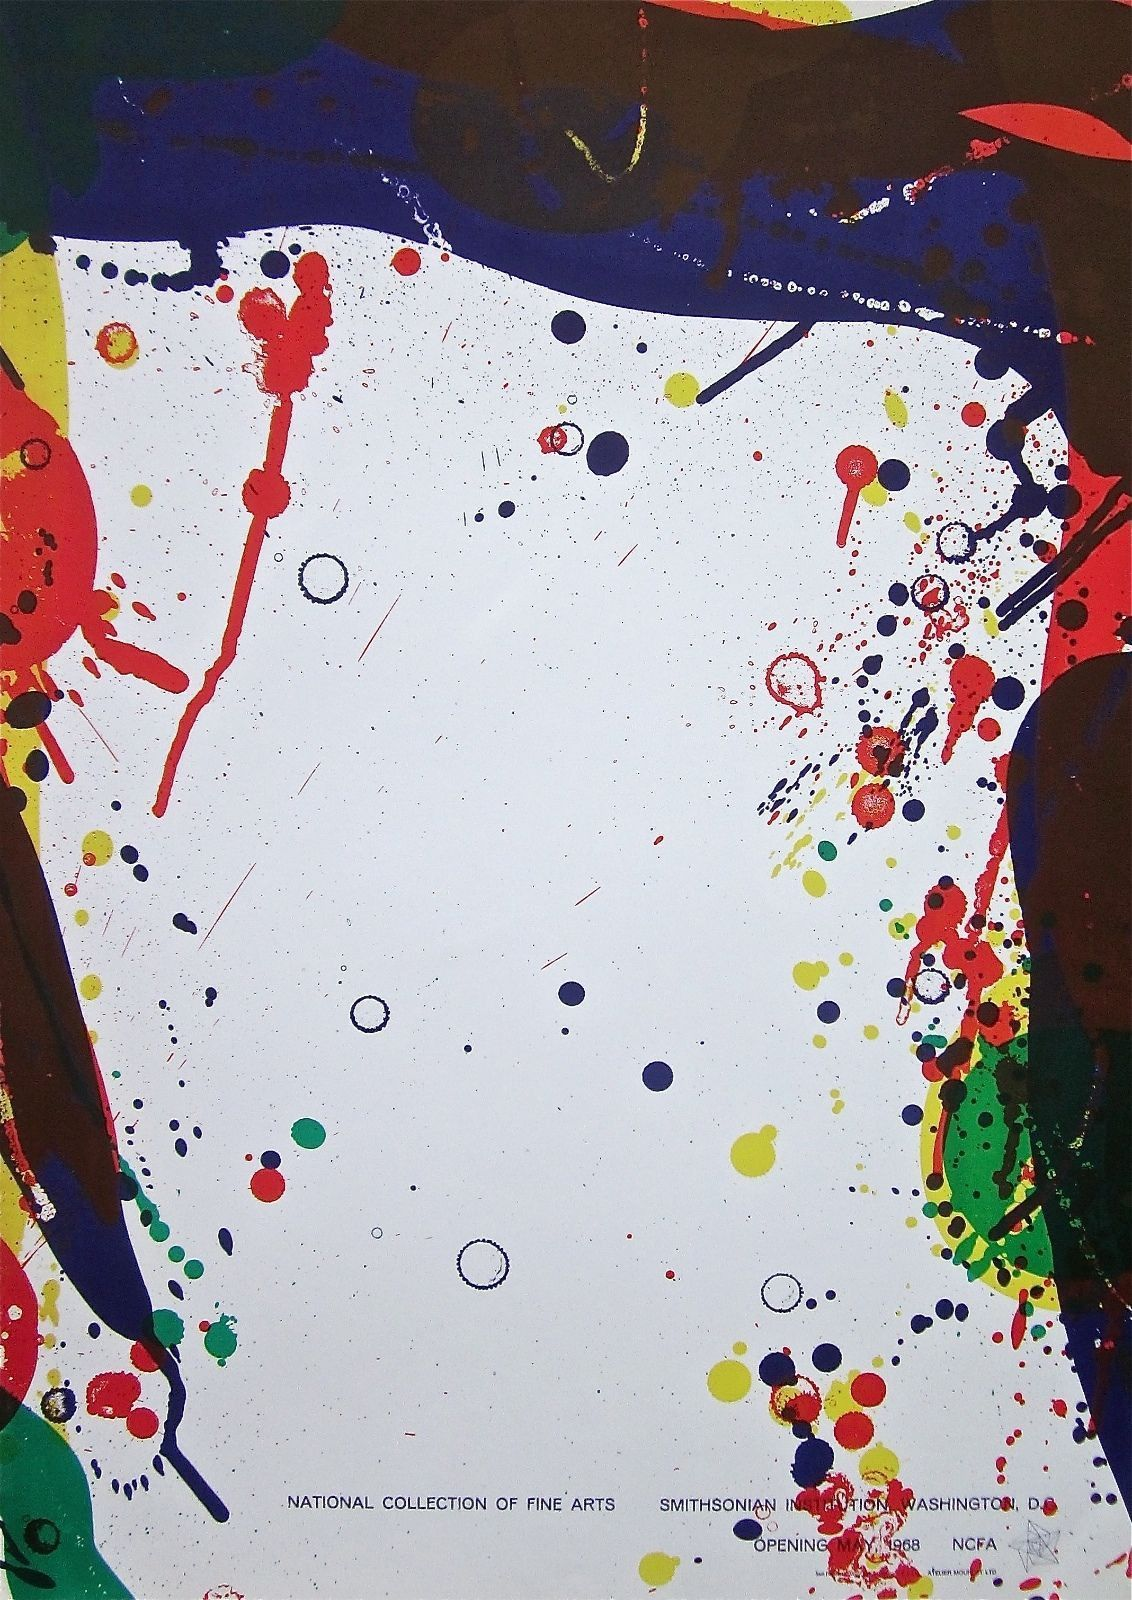 Untitled, 1968 Exhibition Poster, Sam Francis